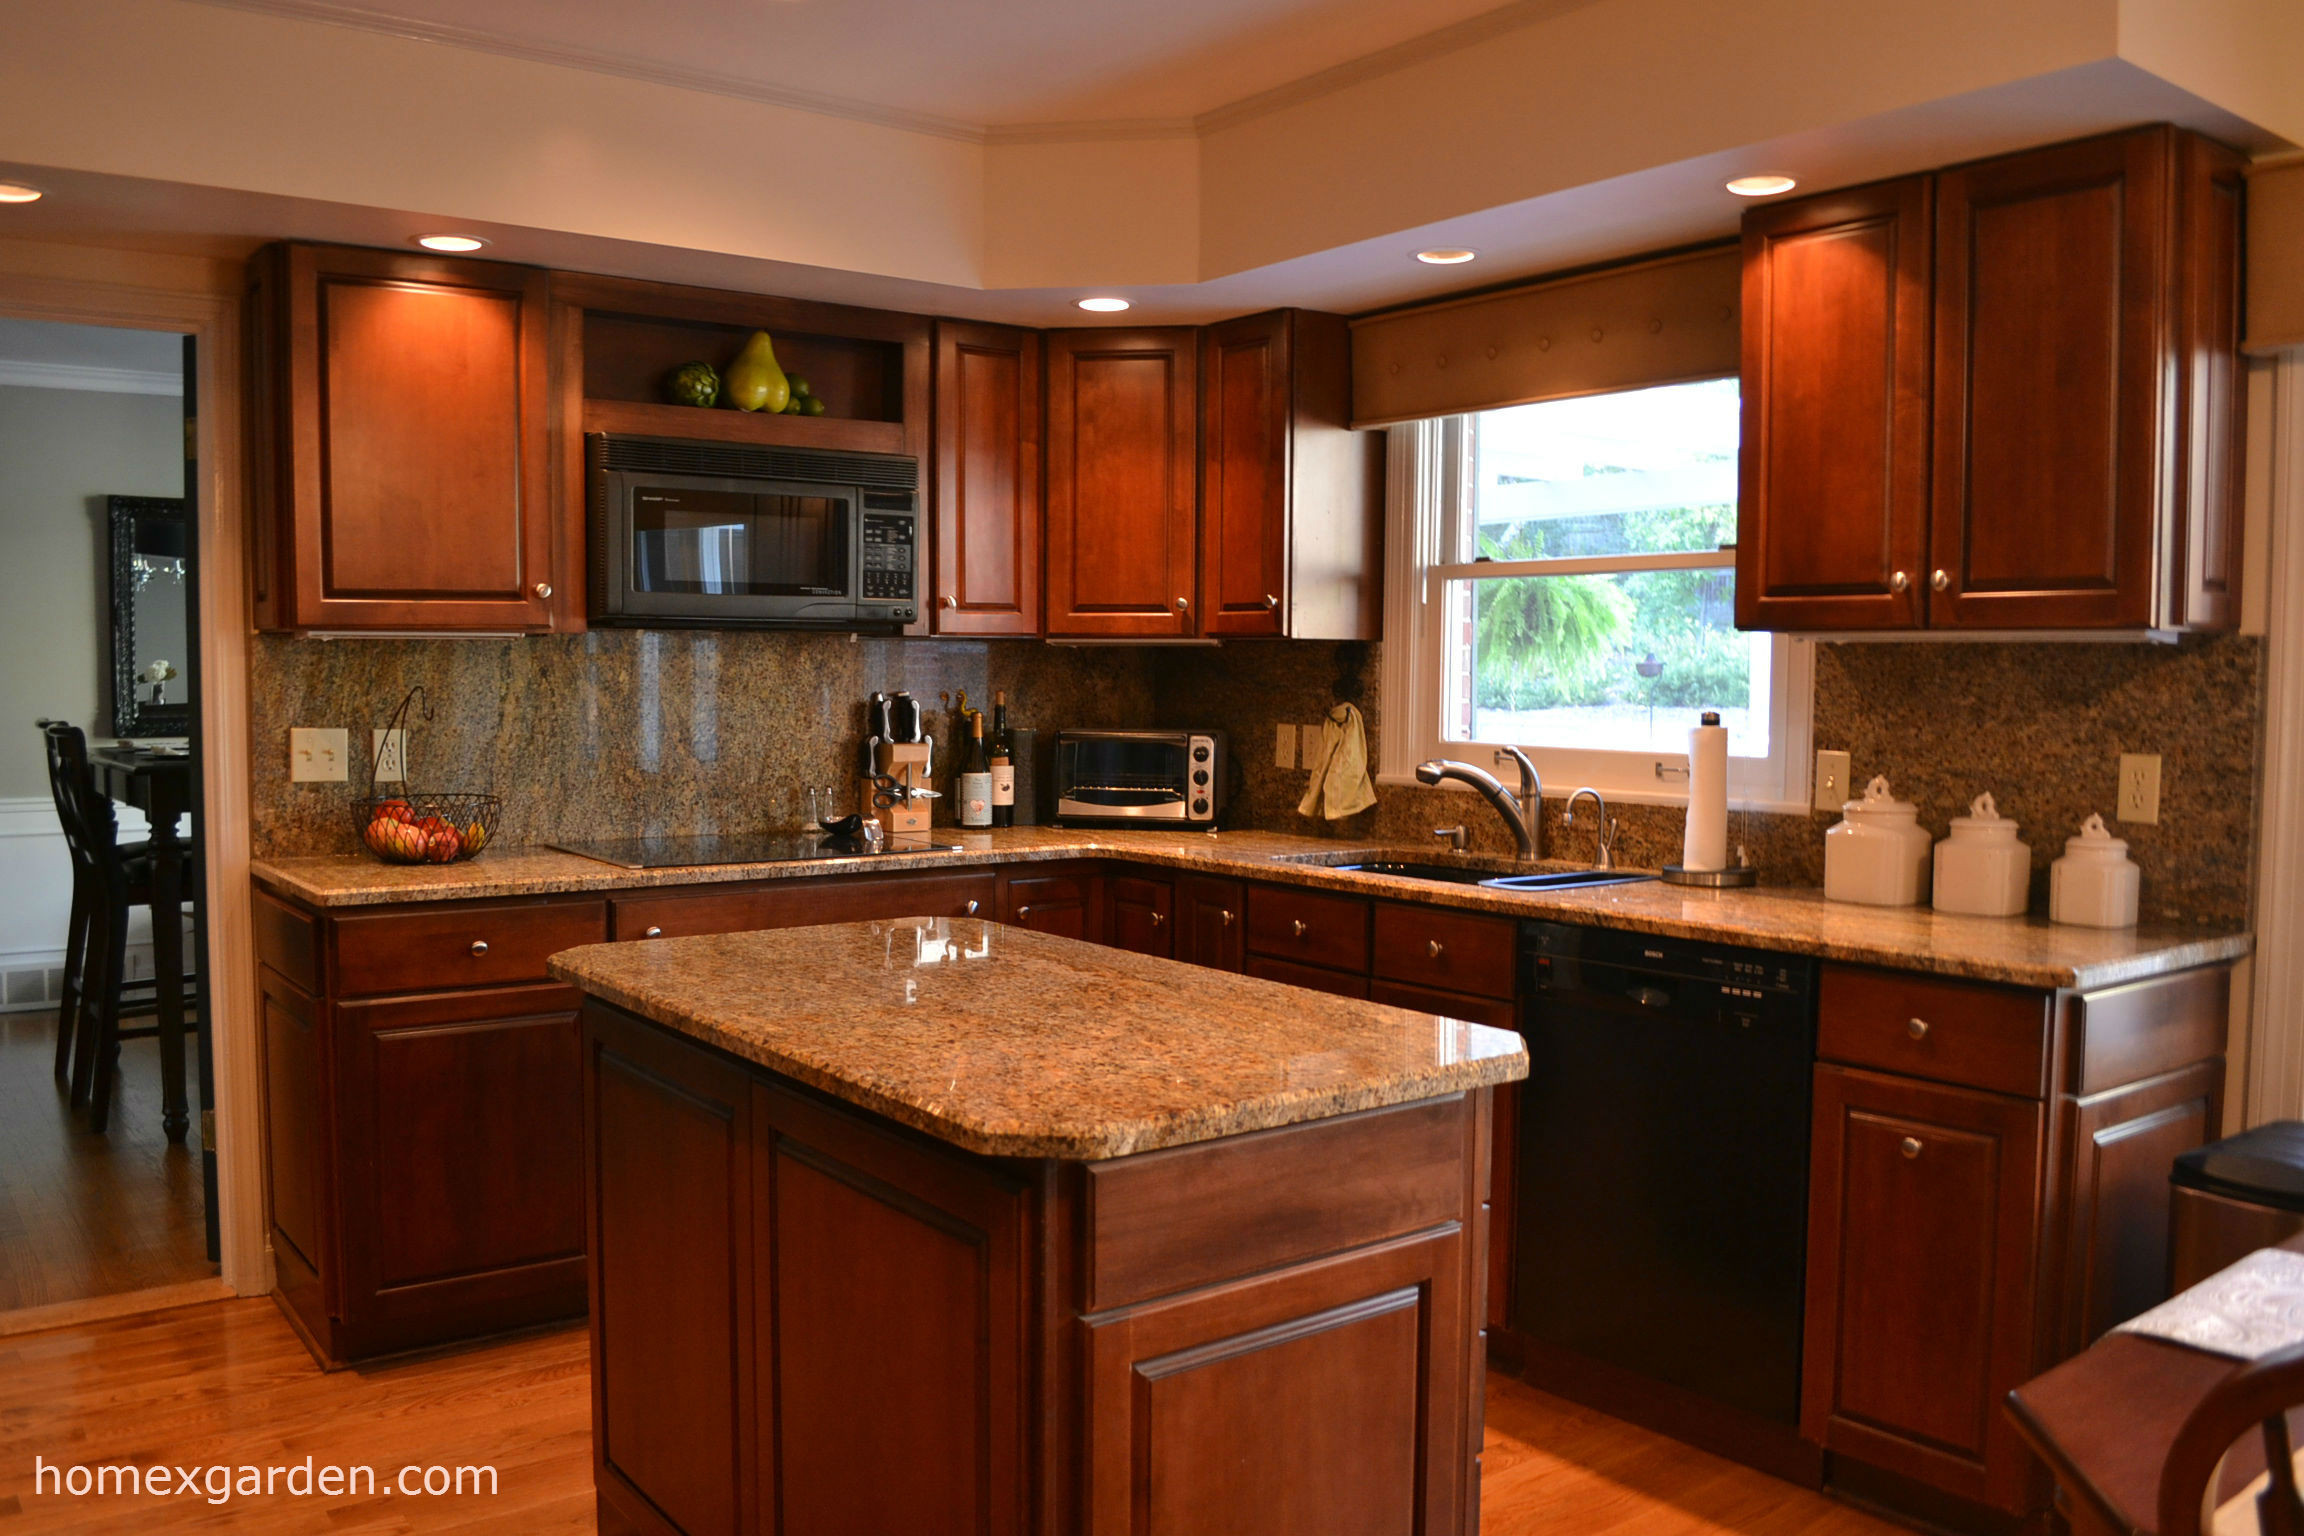 Best ideas about Cherry Cabinet Kitchen Ideas . Save or Pin Perfect Kitchen Paint Ideas With Cherry Cabinets Now.